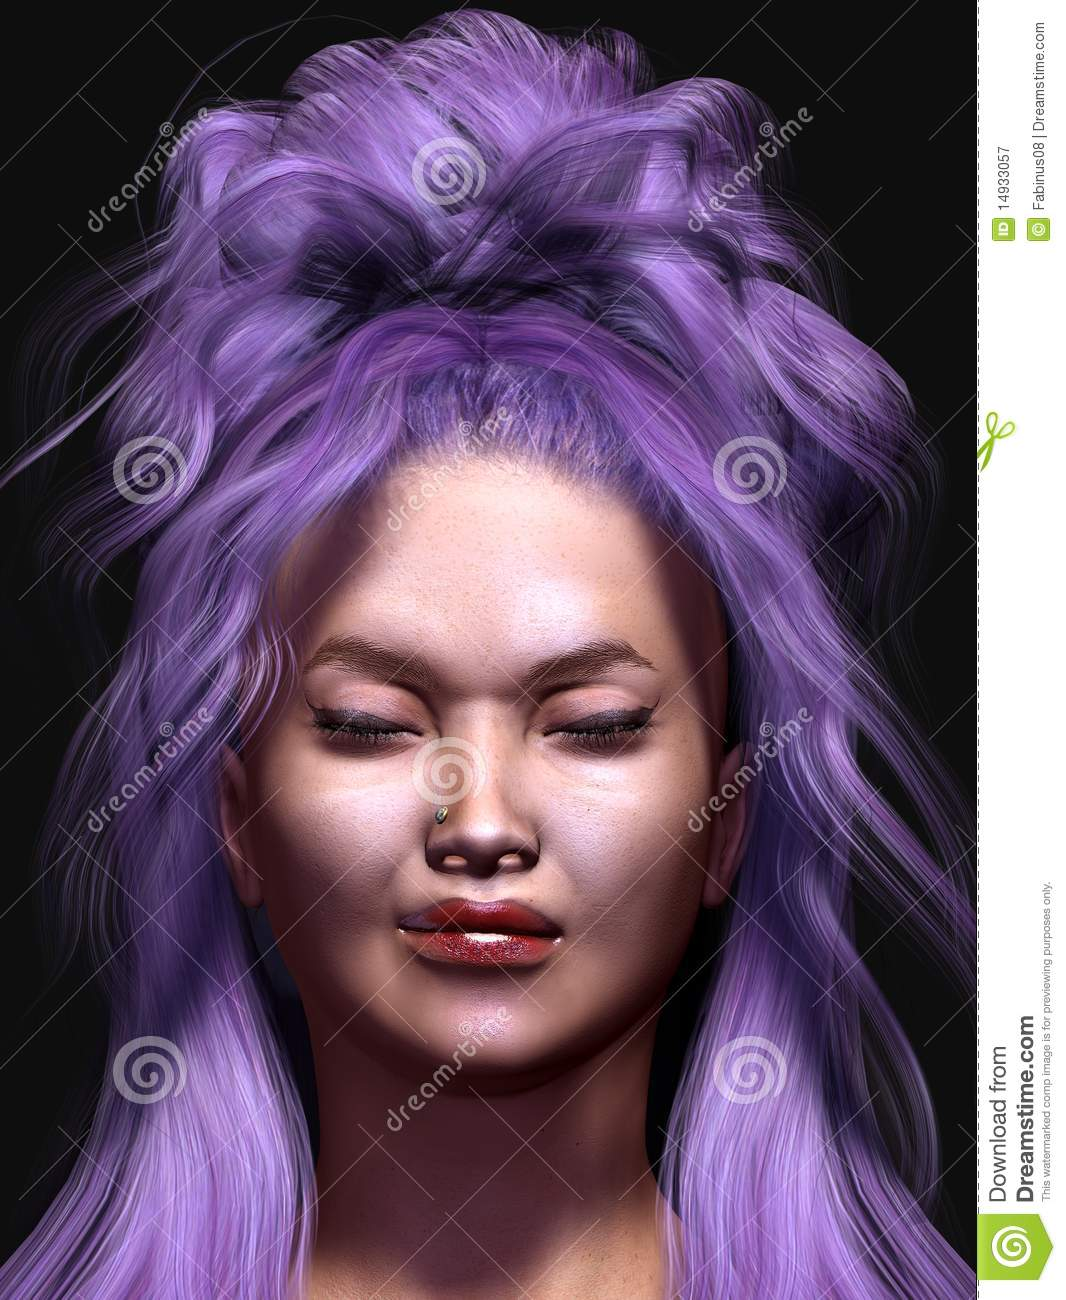 Anime Girl With Long Curly Hair: Girl With Purple Hair Stock Illustration. Illustration Of